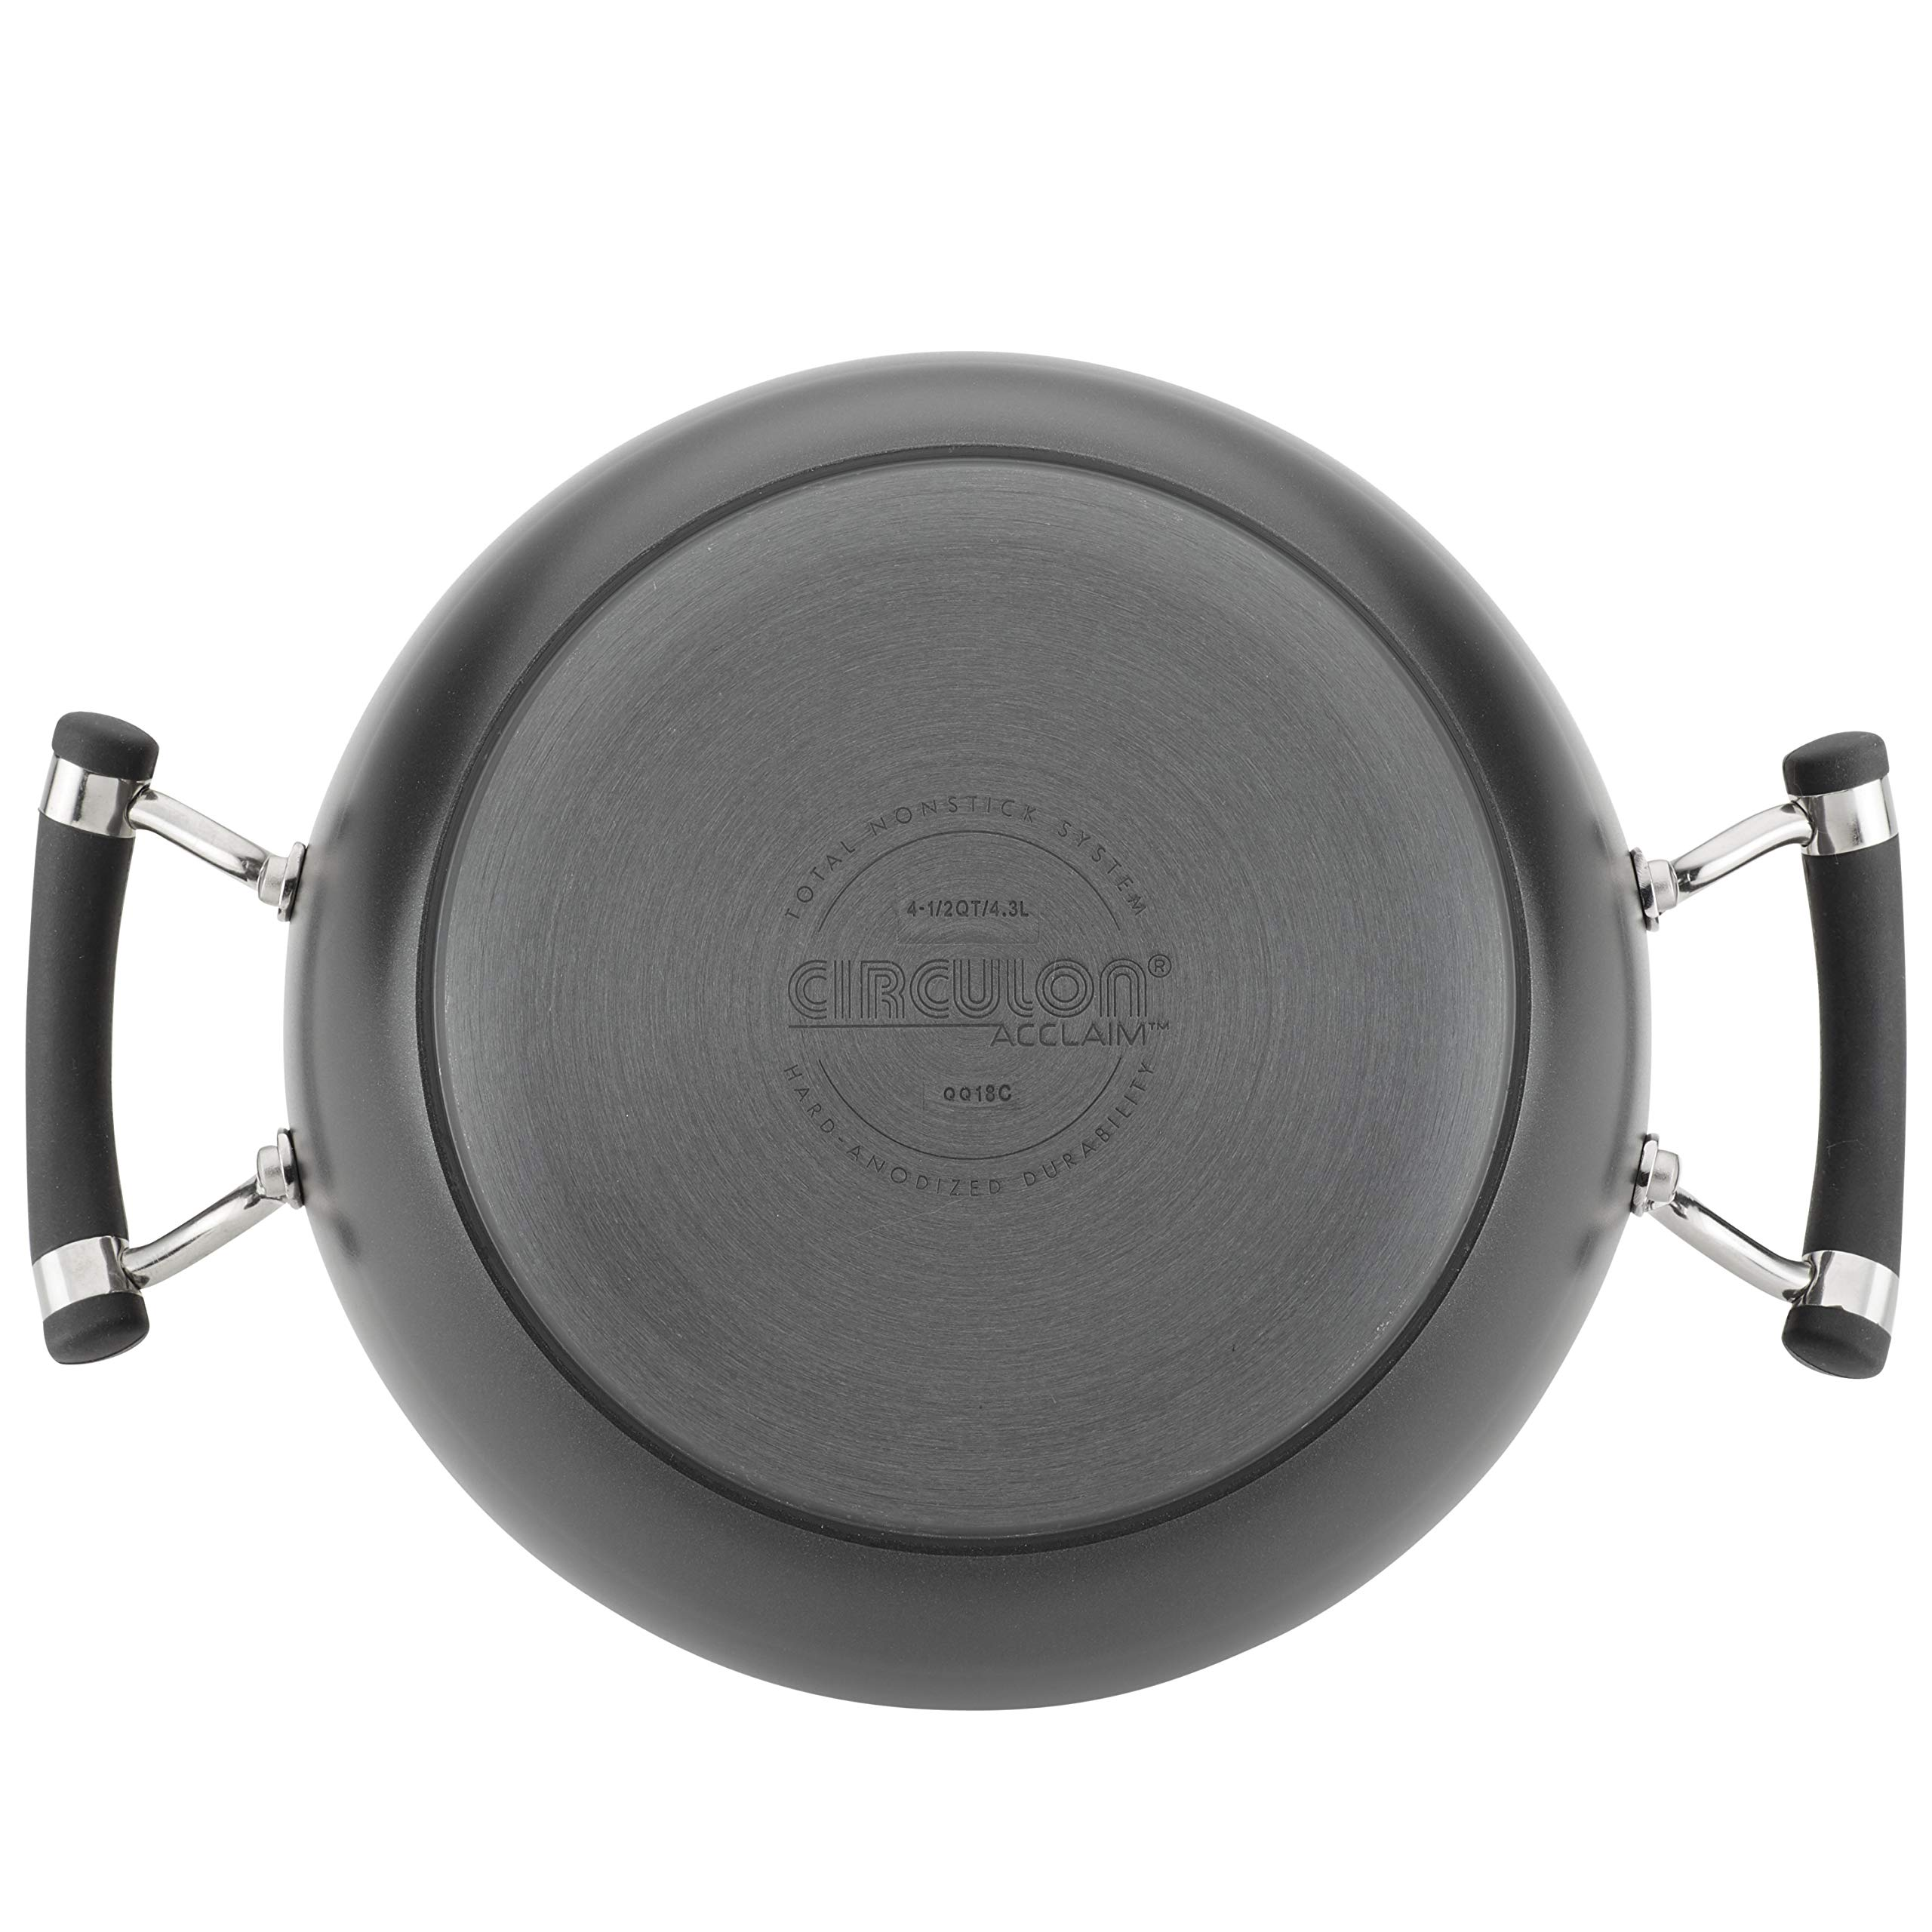 Circulon Acclaim Hard-Anodized Nonstick 4.5-Quart Covered Casserole by Circulon (Image #3)